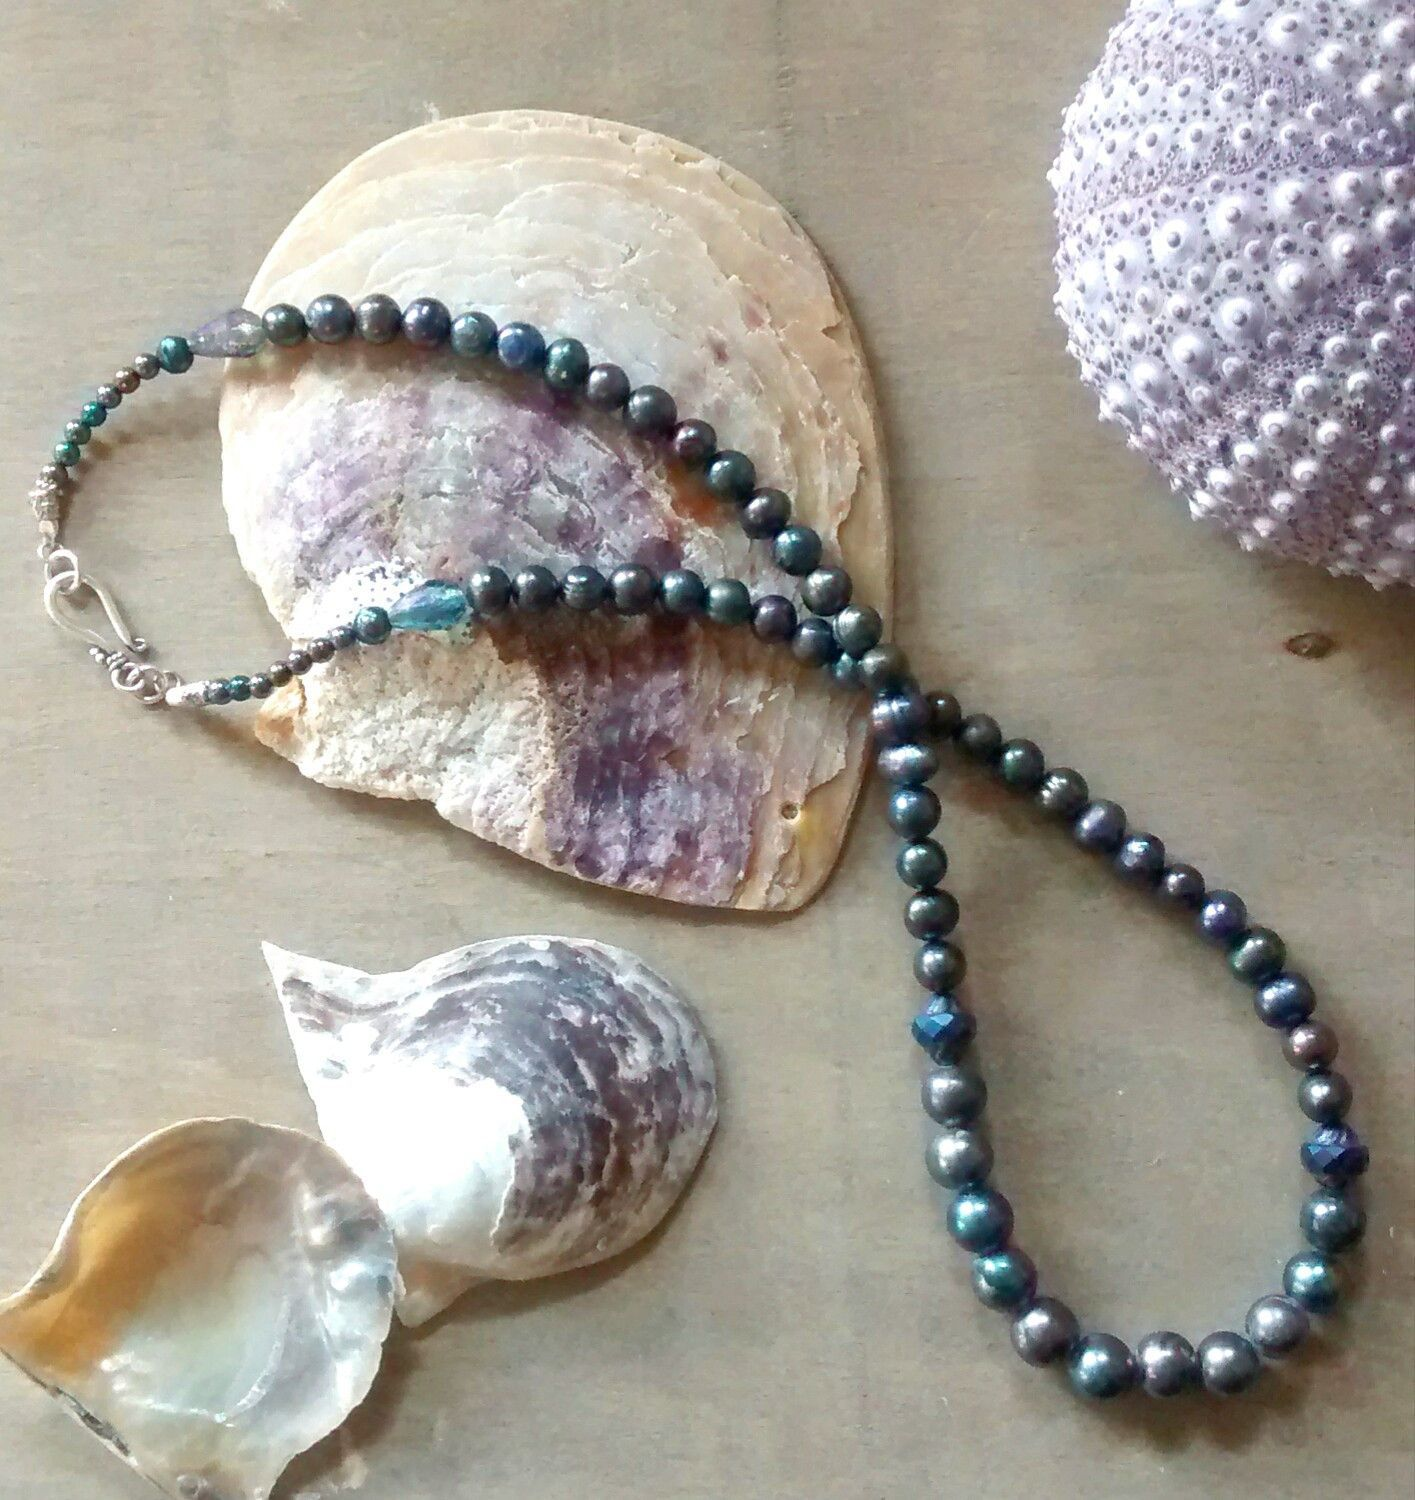 pearls leather pin water genuine yevga boho gift for salt dark simple jewelry her tahiti surf necklace tahitian sea